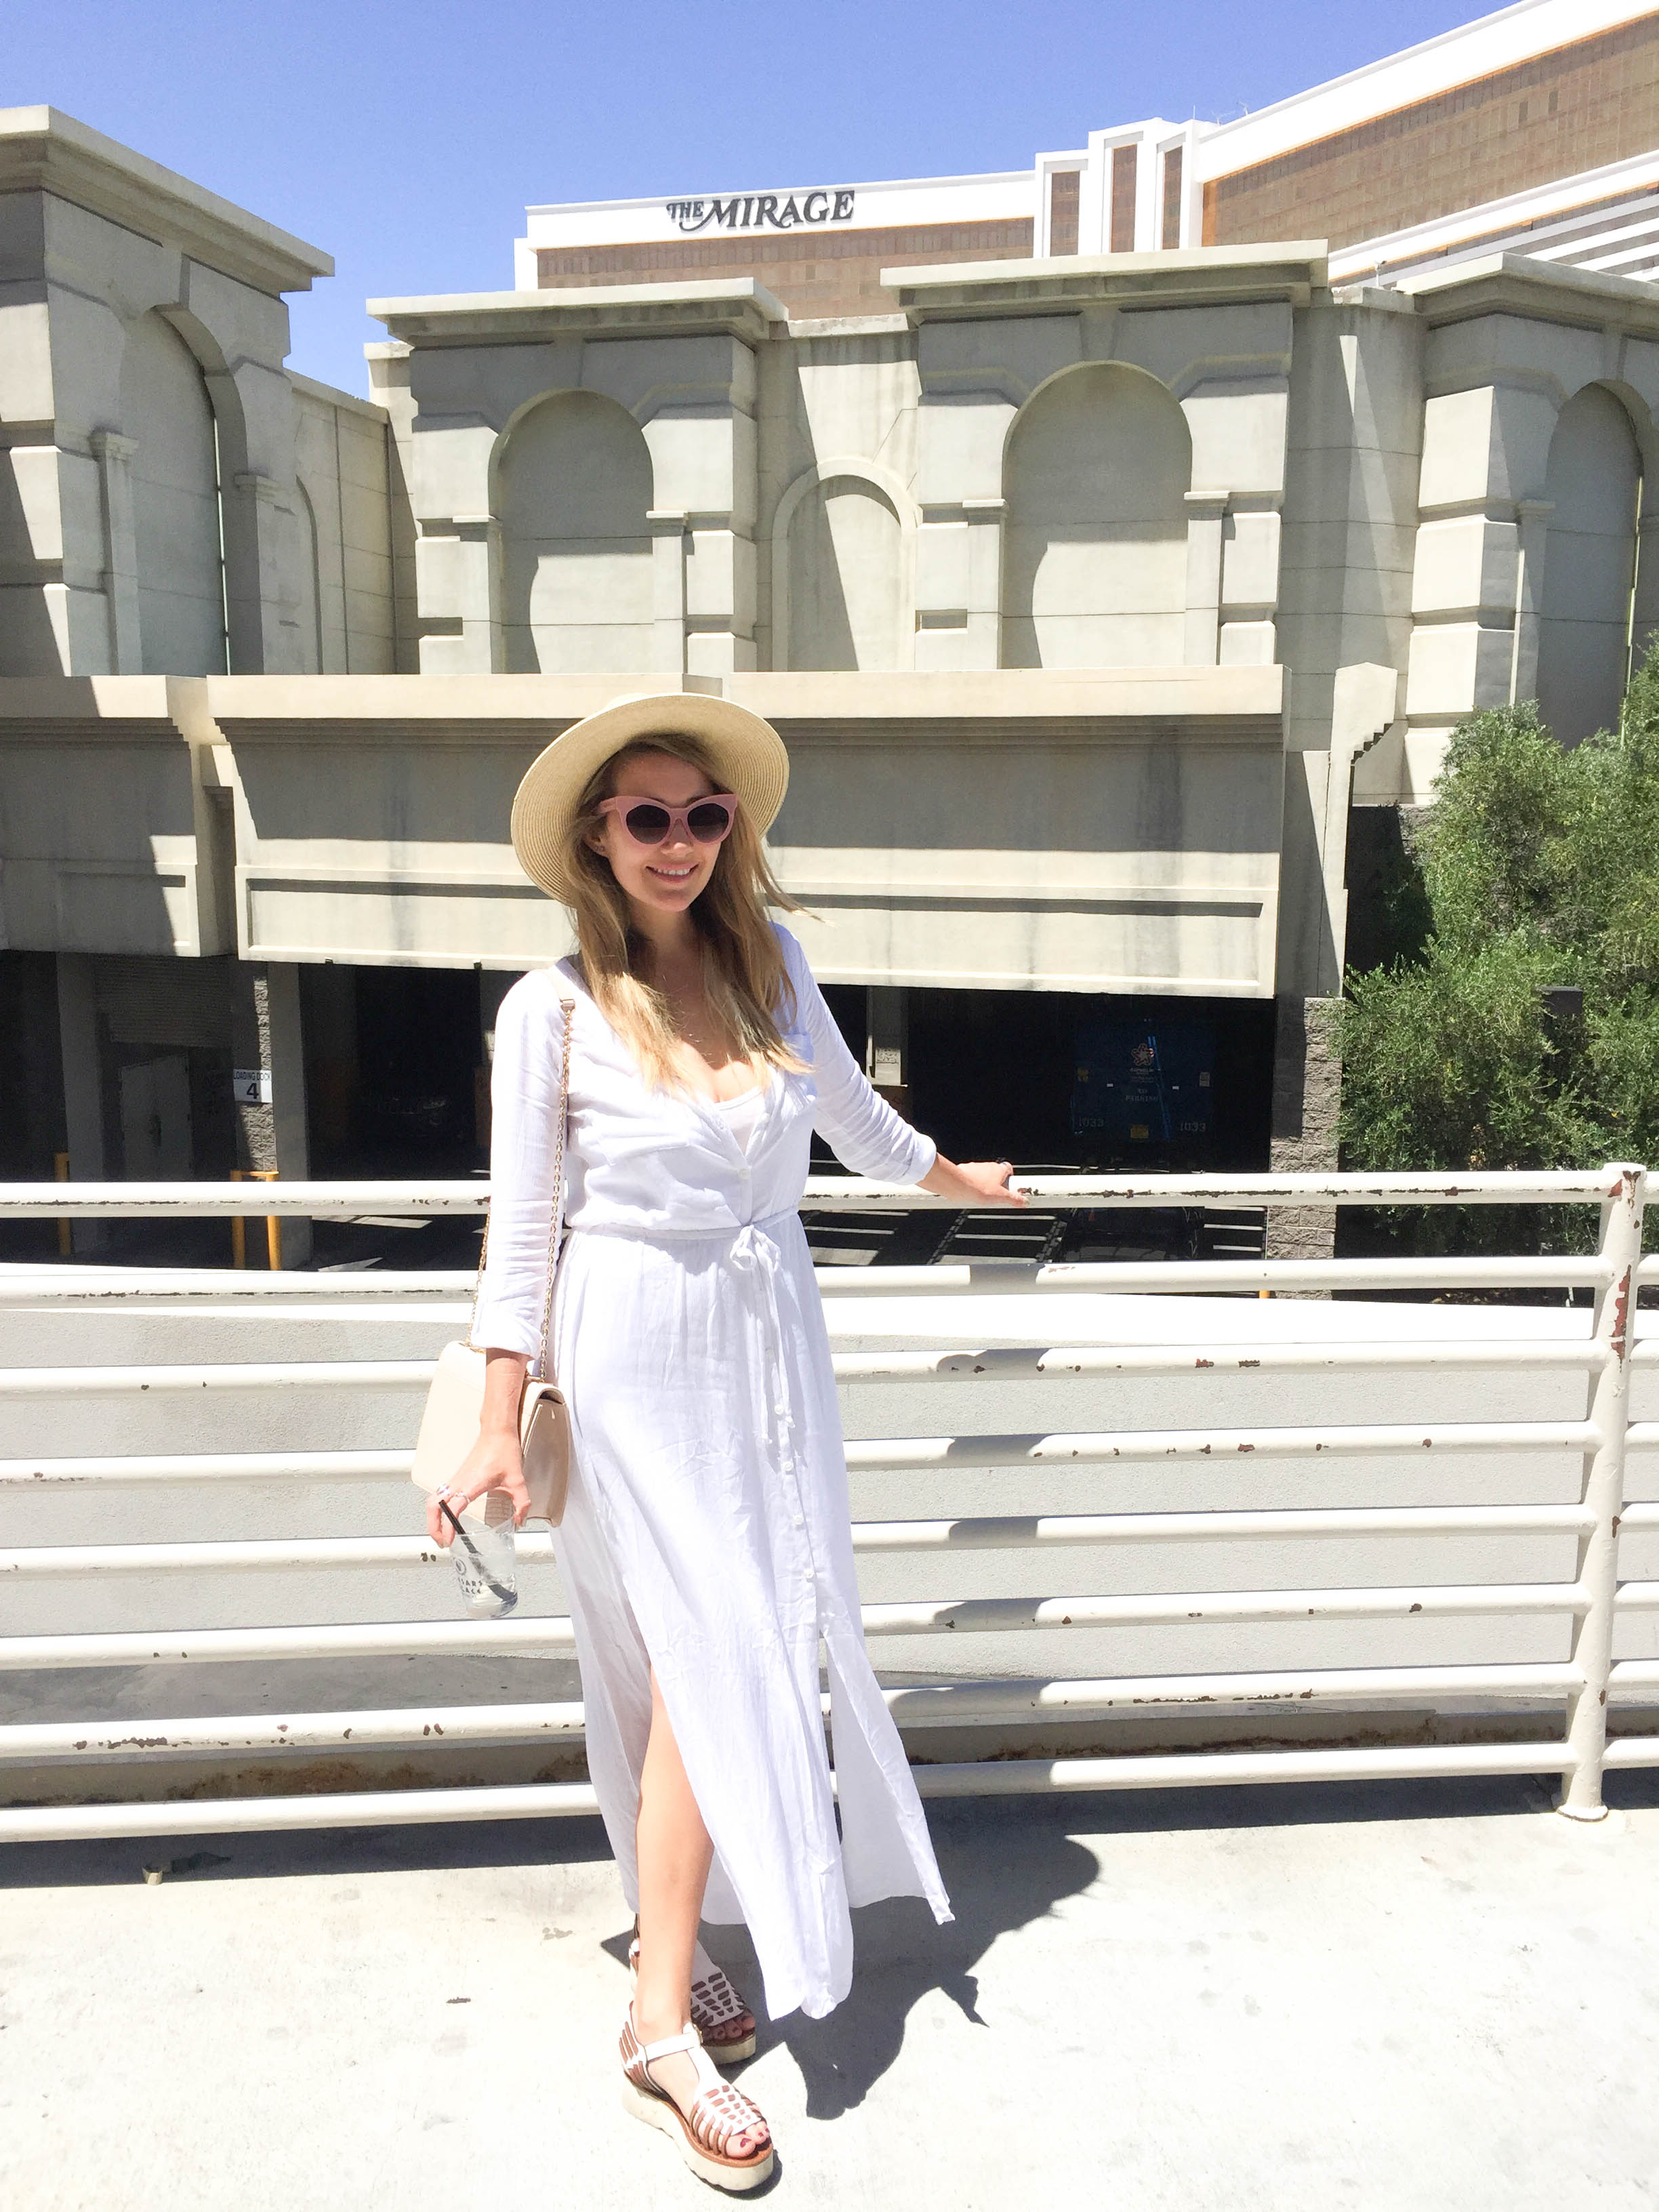 The Style Sauce Viva Las Vegas Fashion and Travel blog